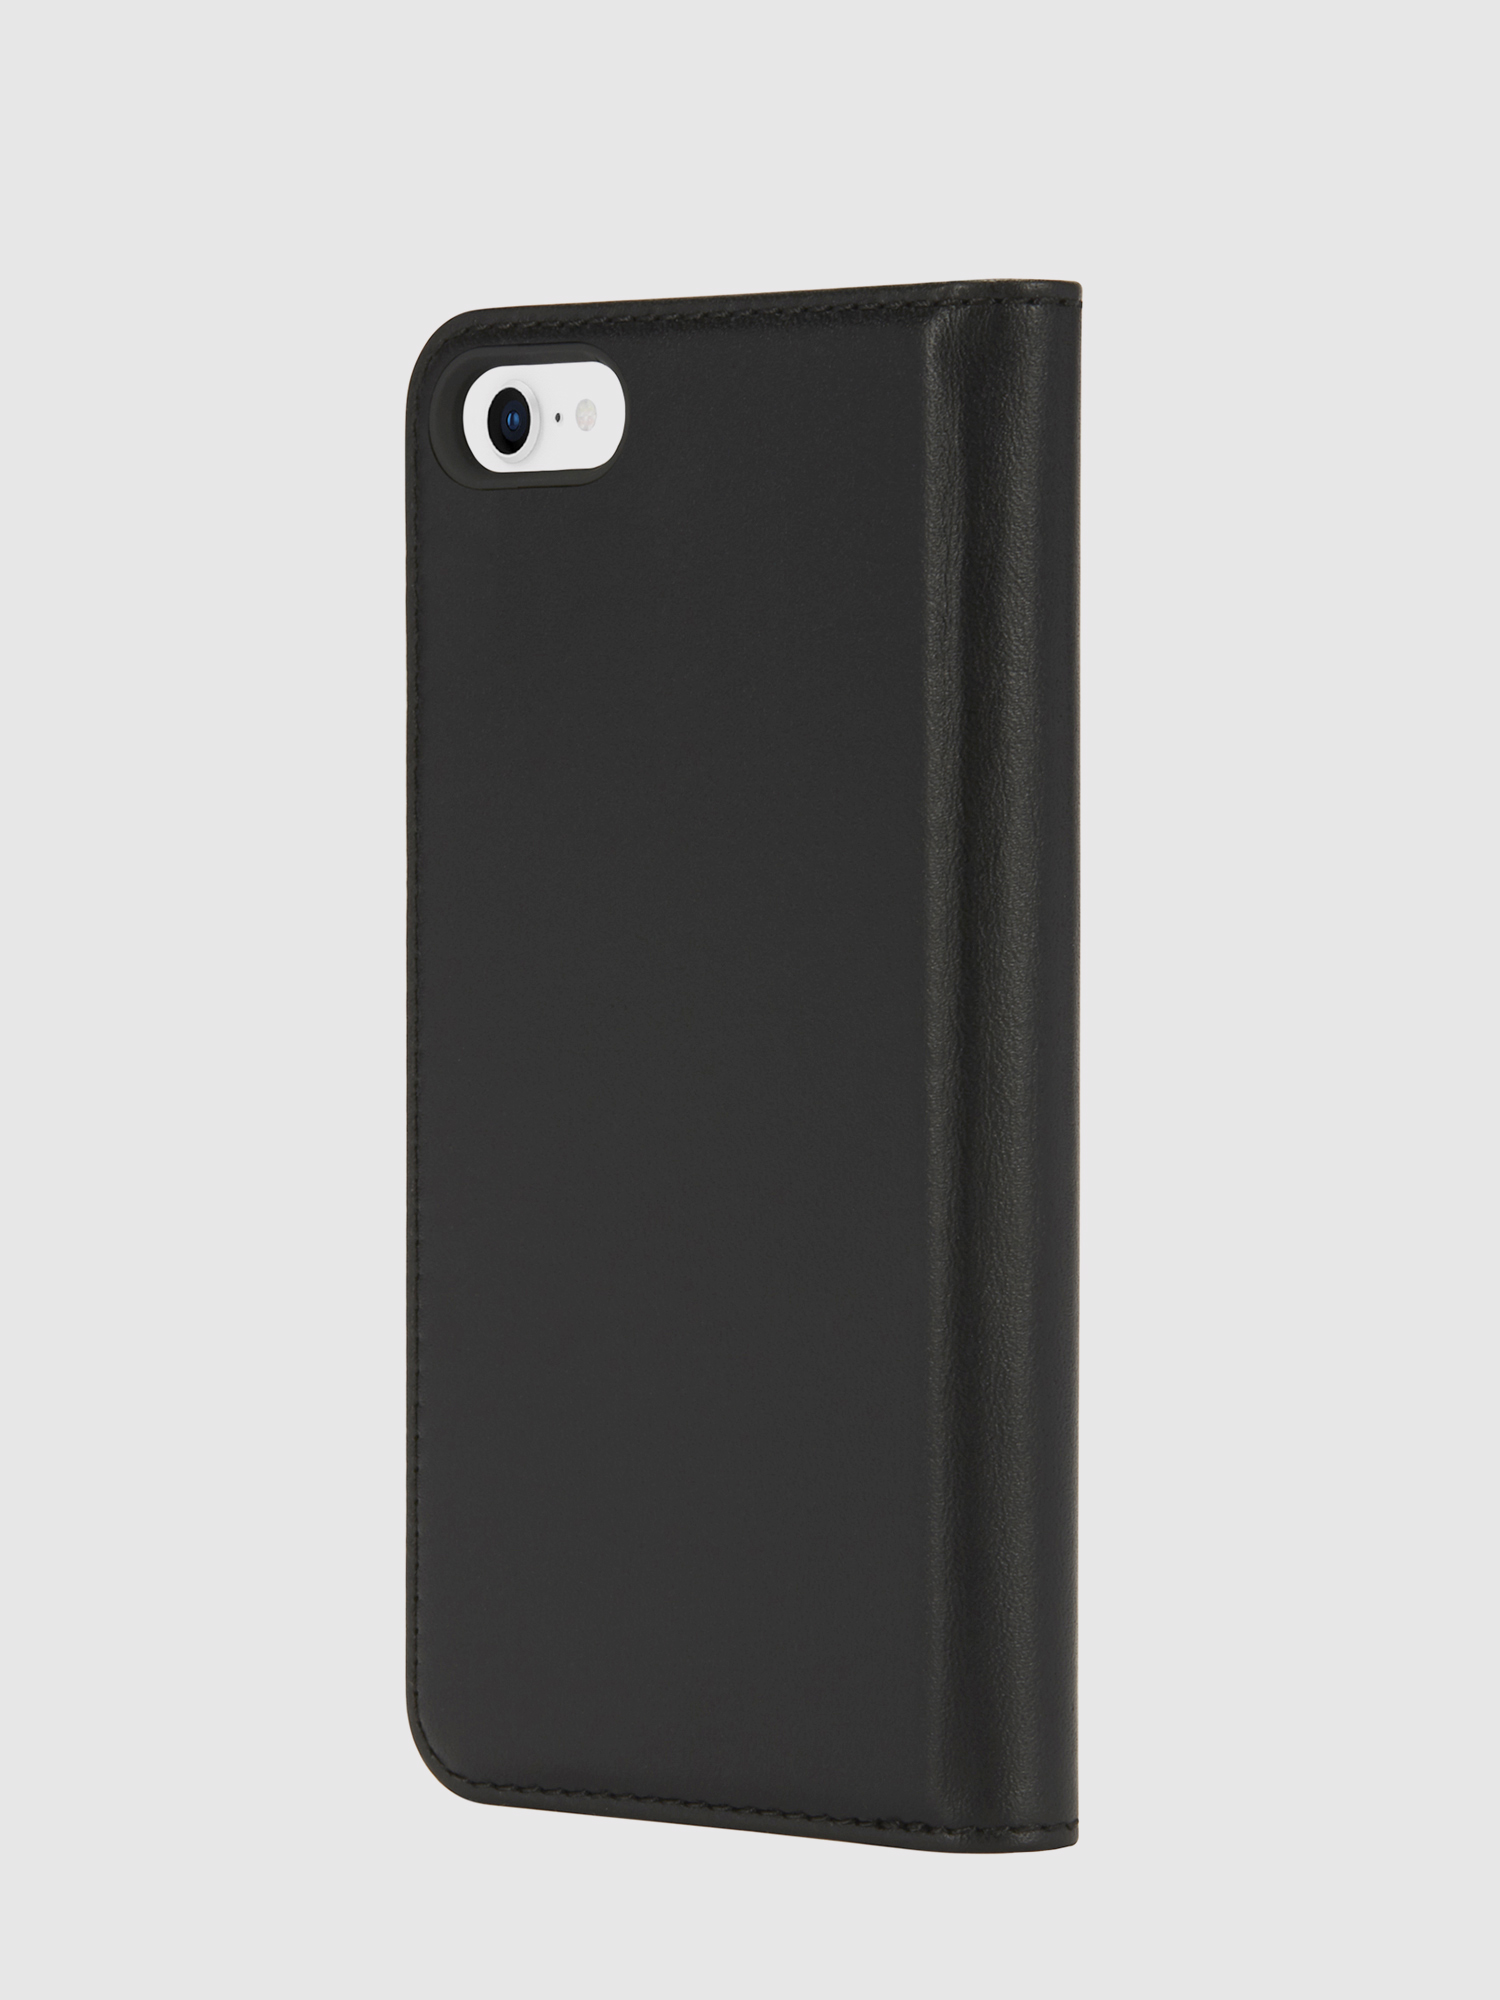 Diesel - SLIM LEATHER FOLIO IPHONE 8/7,  - Flip covers - Image 3